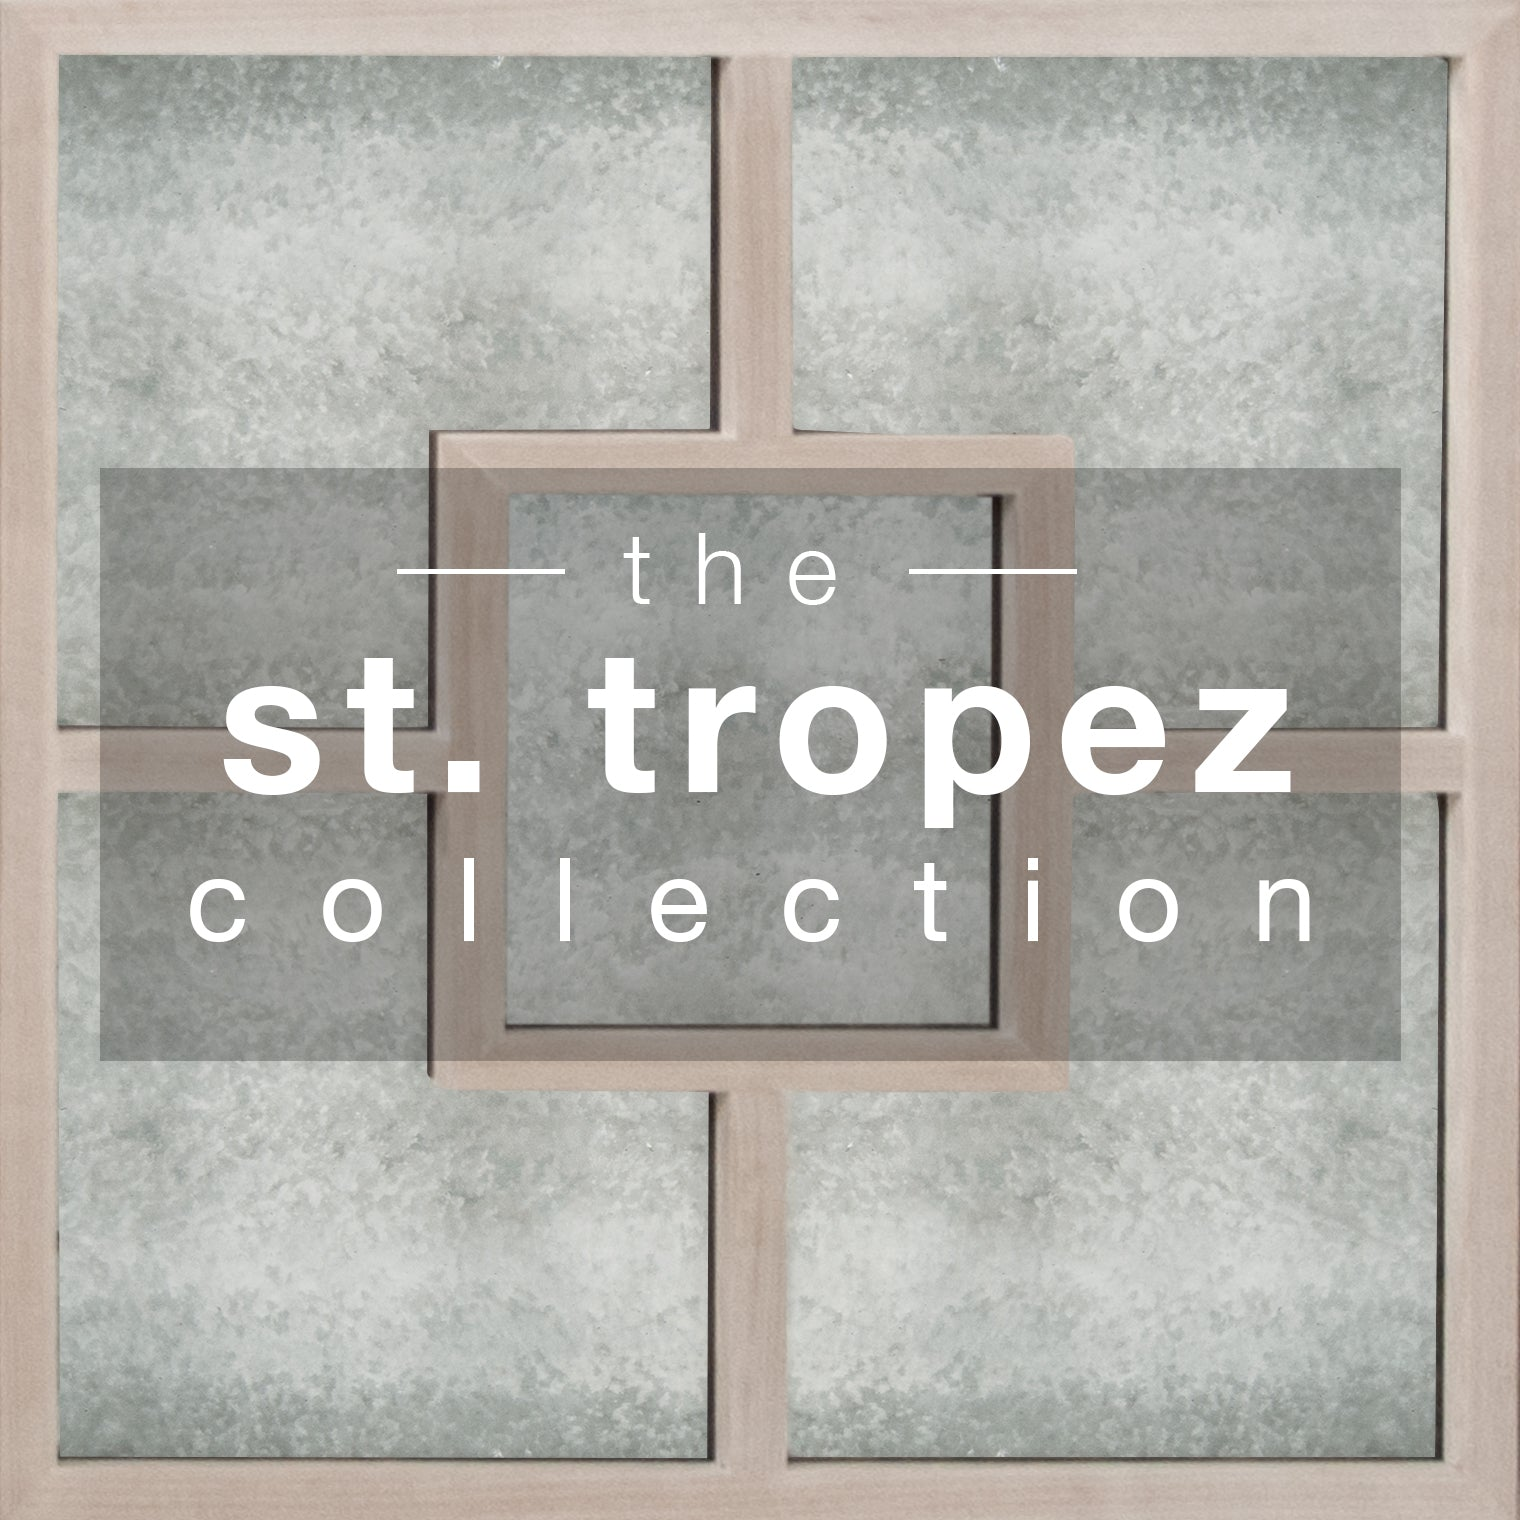 Mottled gray and wood in design of squares with 'the St. Tropez Collection' in white letters inside a center shaded rectangle